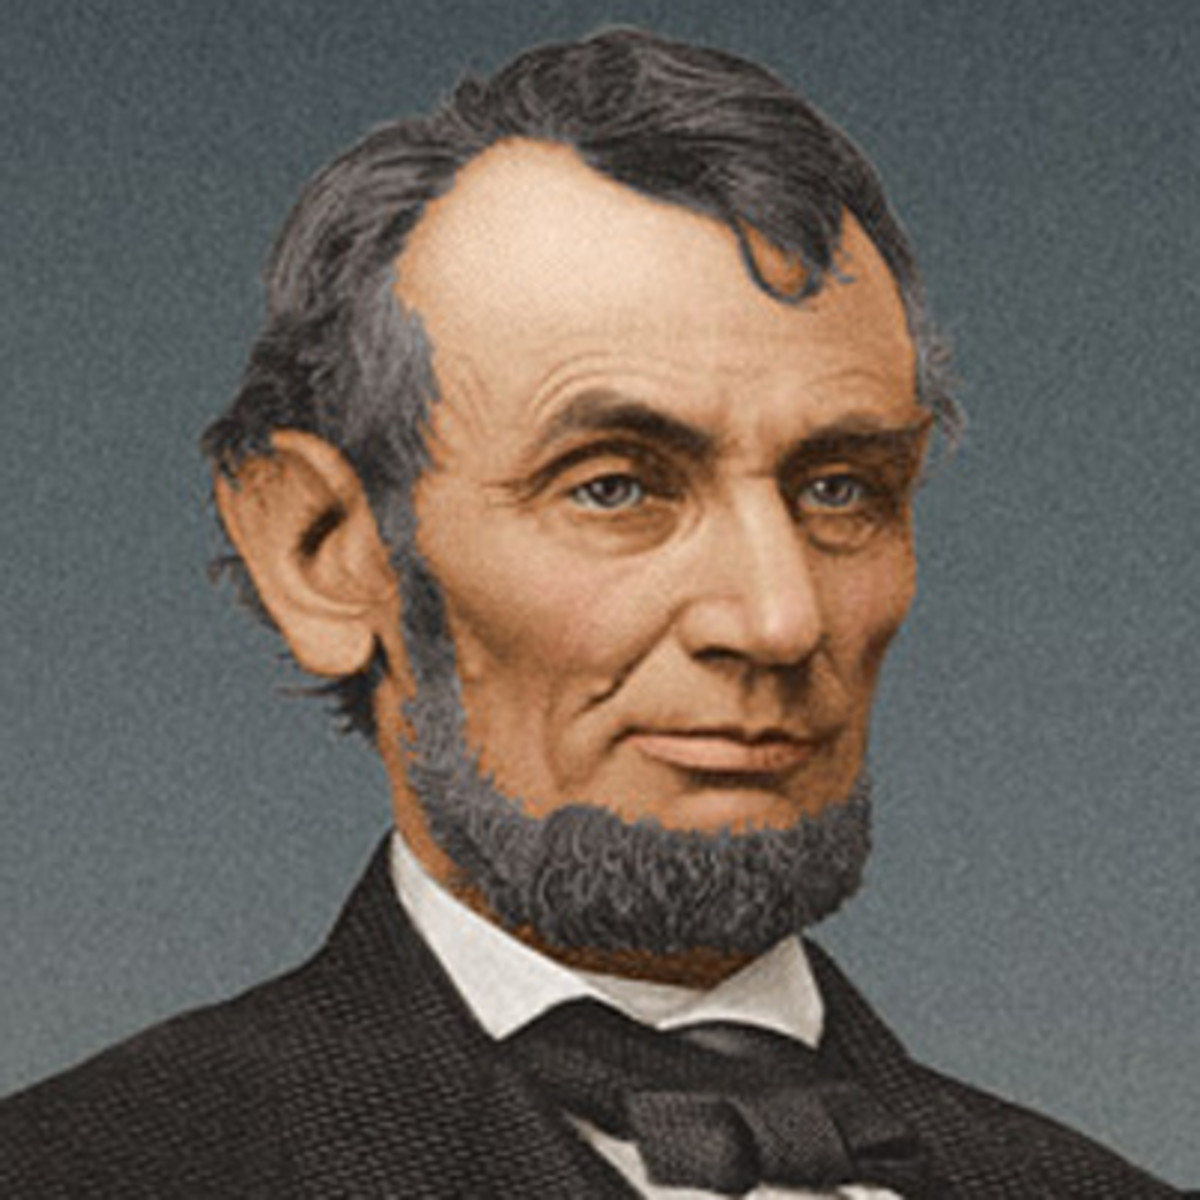 Abraham Lincoln Quotes Abraham Lincoln Quotes on Love Funny Abraham Lincoln Quotes Abraham Lincoln Quotes on Leadership Success Quotes by Abraham Lincoln Abraham Lincoln Quotes on Education Abraham Lincoln Quotes on Friendship Abraham Lincoln Quotes on Democracy Abraham Lincoln Quotes on Civil War Abraham Lincoln Quotes about Freedom Abraham Lincoln Quotes on Power Abraham Lincoln Quotes on Politics Abraham Lincoln Quotes on Mother Abraham Lincoln Quotes on Hard Work Abraham Lincoln Quotes about Future Motivational Abraham Lincoln Quotes Inspirational Abraham Lincoln Quotes 250+【Abraham Lincoln Quotes 】- Motivational Quotations Here is the Best Collection of Abraham Lincoln Quotes. These Amazing Motivational and Inspirational yet Funny Quotations are about Love, Leadership, Education, Friendship, Civil War, Freedom, Power and so on.